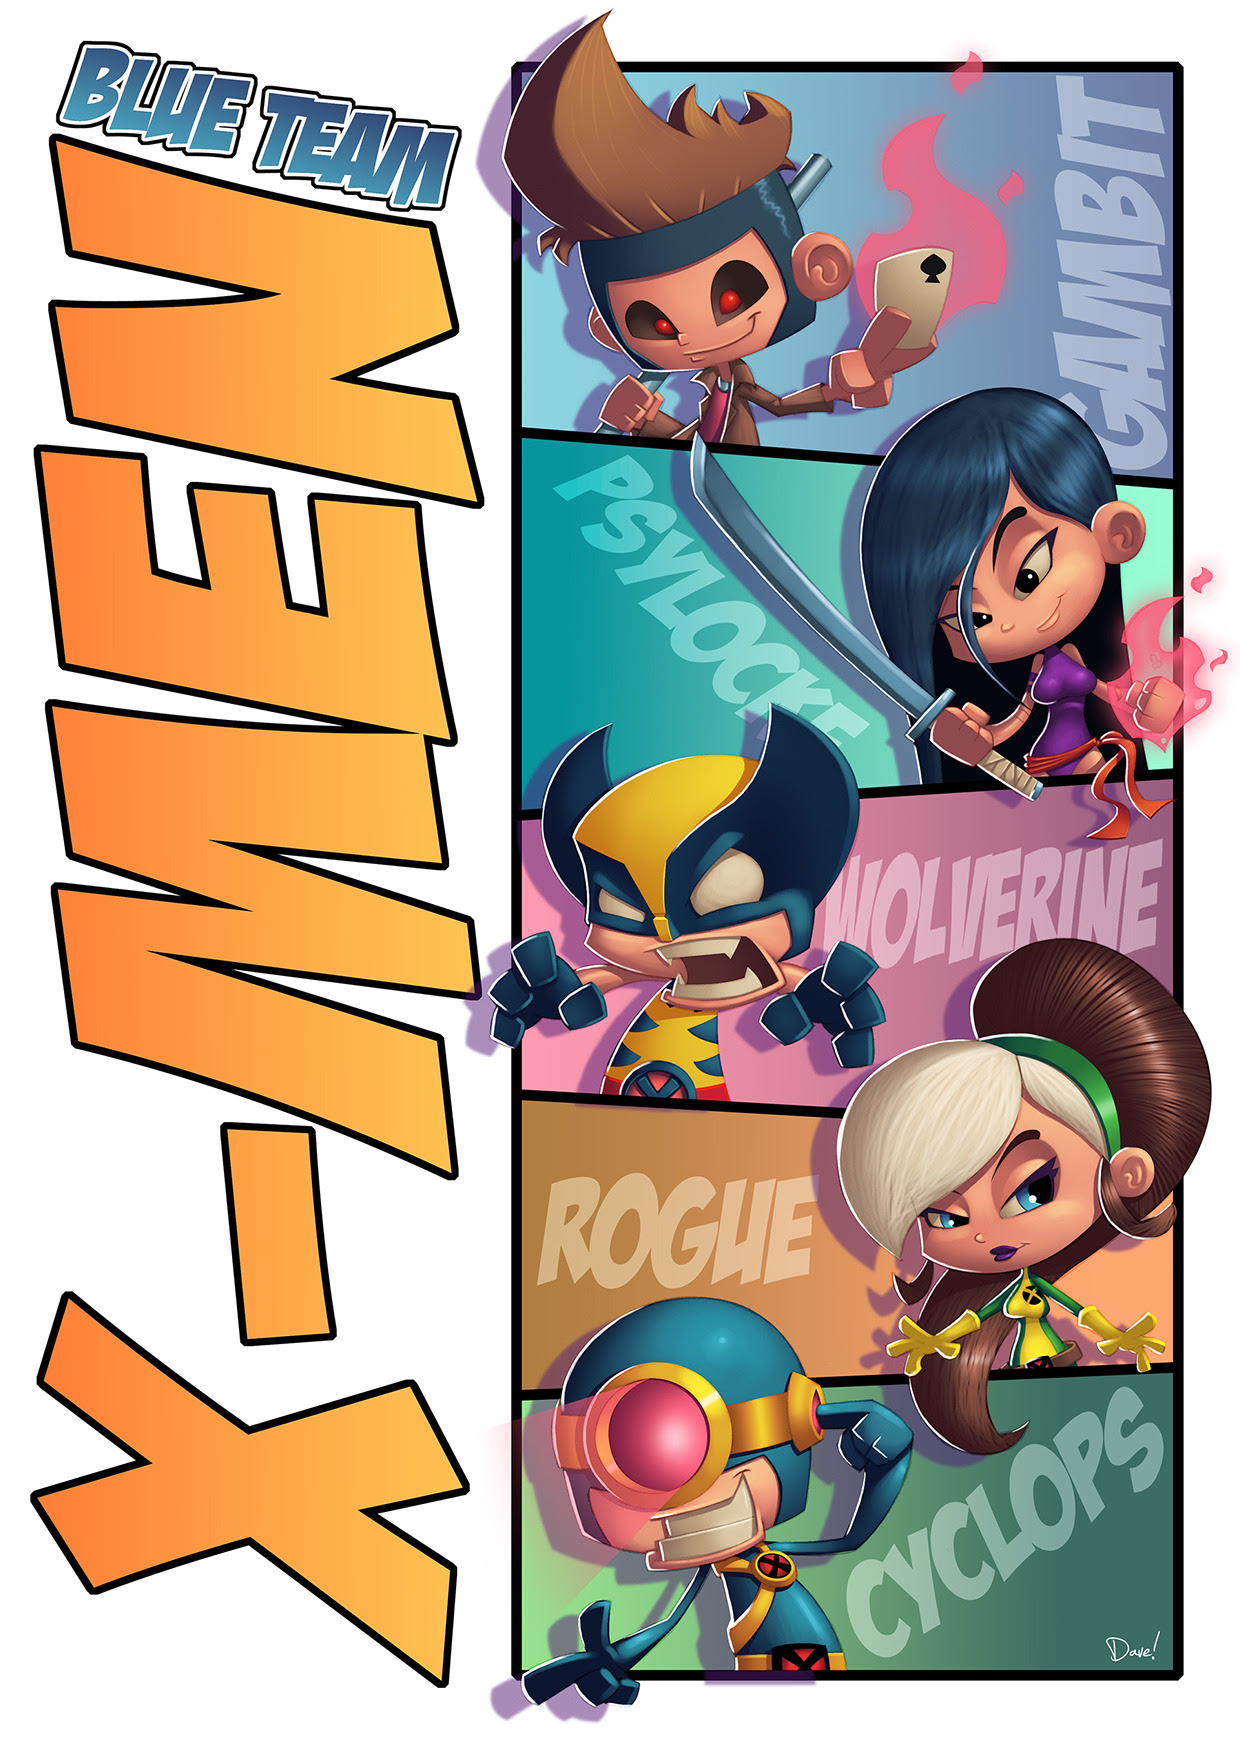 X-Men Blue TeamCreated by Dave Atze